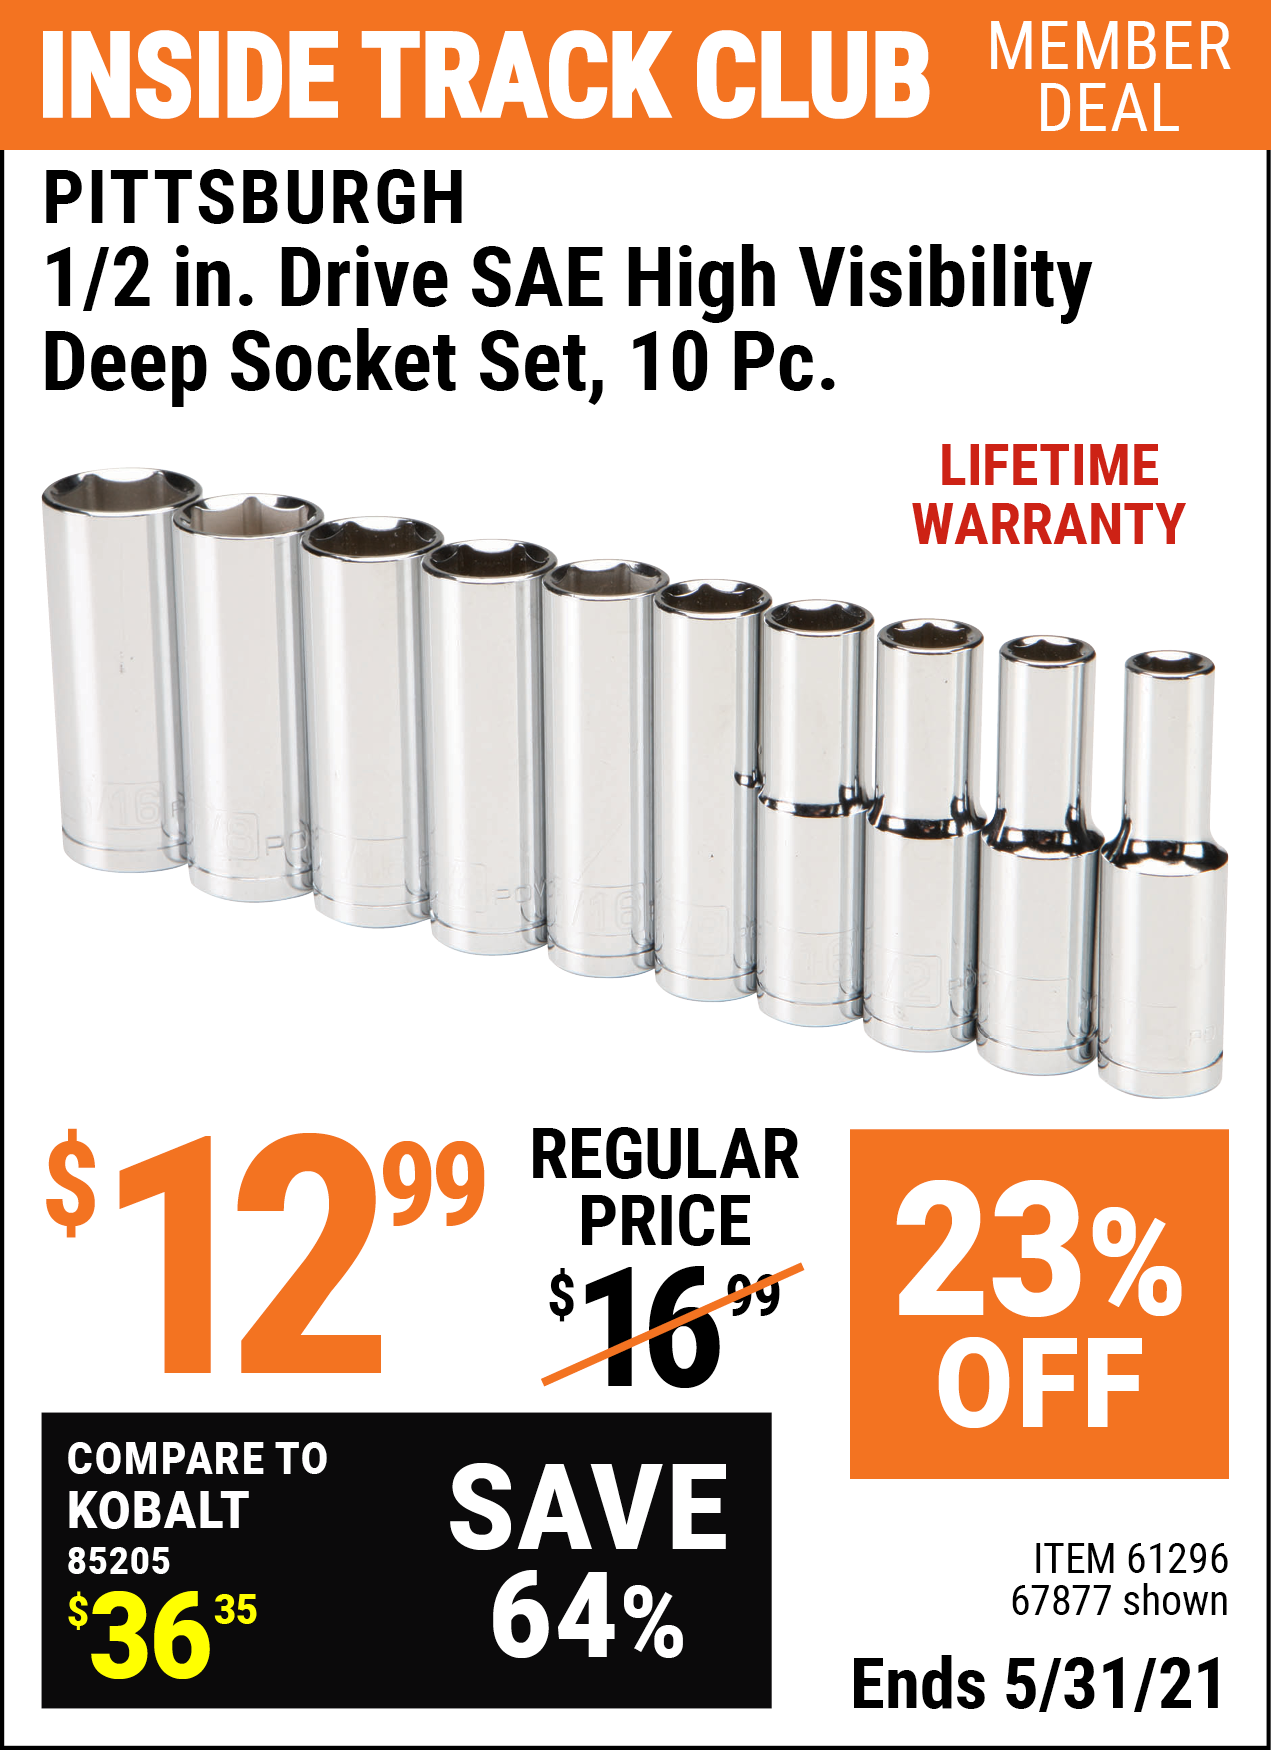 Inside Track Club members can buy the PITTSBURGH 1/2 in. Drive SAE High Visibility Deep Socket 10 Pc. (Item 67877/61296) for $12.99, valid through 5/31/2021.